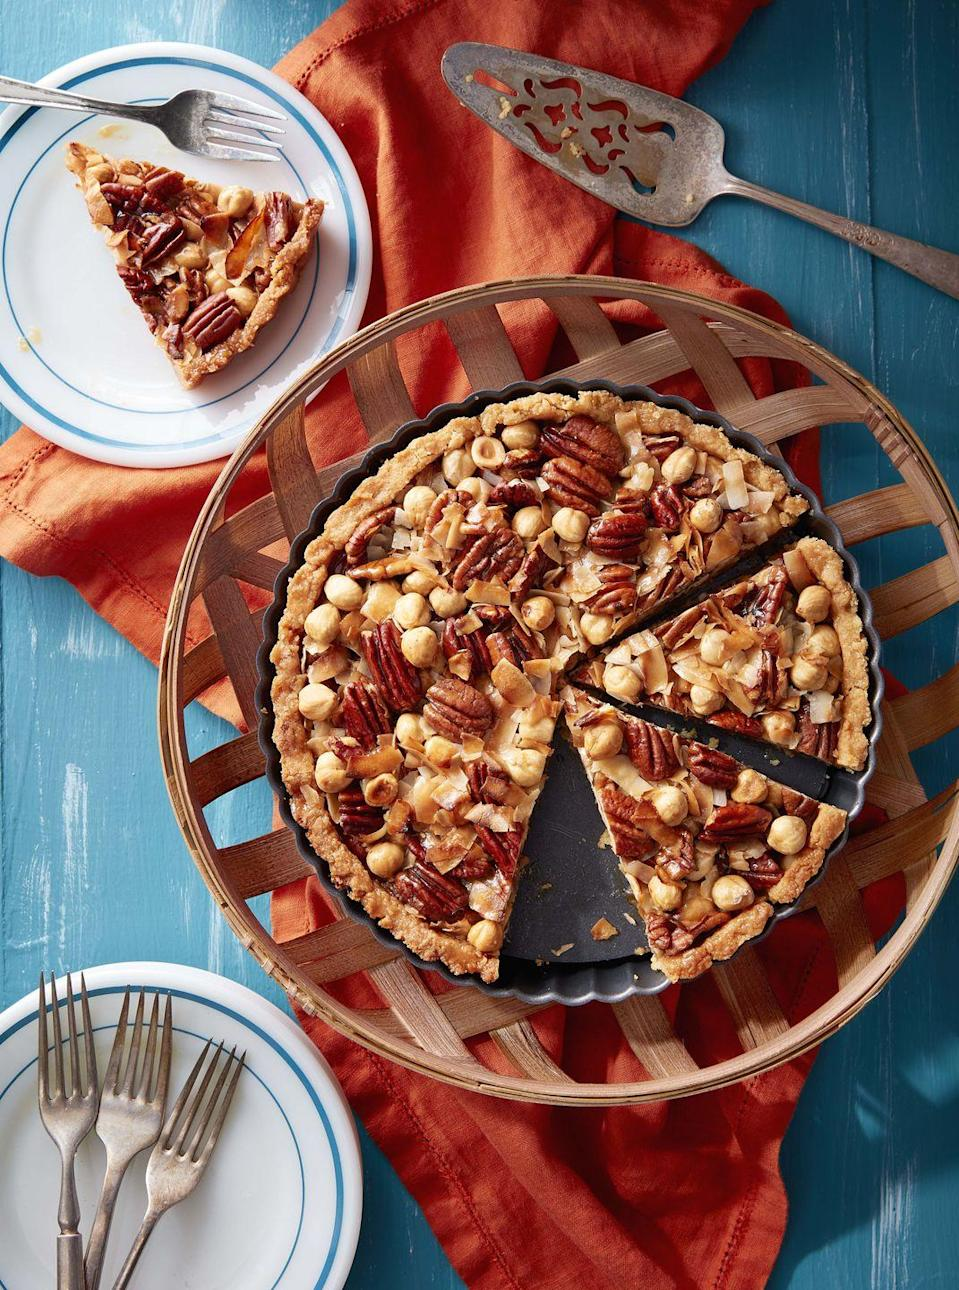 "<p>2020 has been nuts. Send off the old year with this extra-nutty tart.</p><p><strong><a href=""https://www.countryliving.com/food-drinks/a34275342/pecan-hazelnut-coconut-tart/"" rel=""nofollow noopener"" target=""_blank"" data-ylk=""slk:Get the recipe"" class=""link rapid-noclick-resp"">Get the recipe</a>.</strong></p><p><a class=""link rapid-noclick-resp"" href=""https://www.amazon.com/Fox-Run-44513-Bottom-Quiche/dp/B000QIZ1I2/?tag=syn-yahoo-20&ascsubtag=%5Bartid%7C10050.g.1078%5Bsrc%7Cyahoo-us"" rel=""nofollow noopener"" target=""_blank"" data-ylk=""slk:SHOP TART PANS"">SHOP TART PANS</a><br></p>"